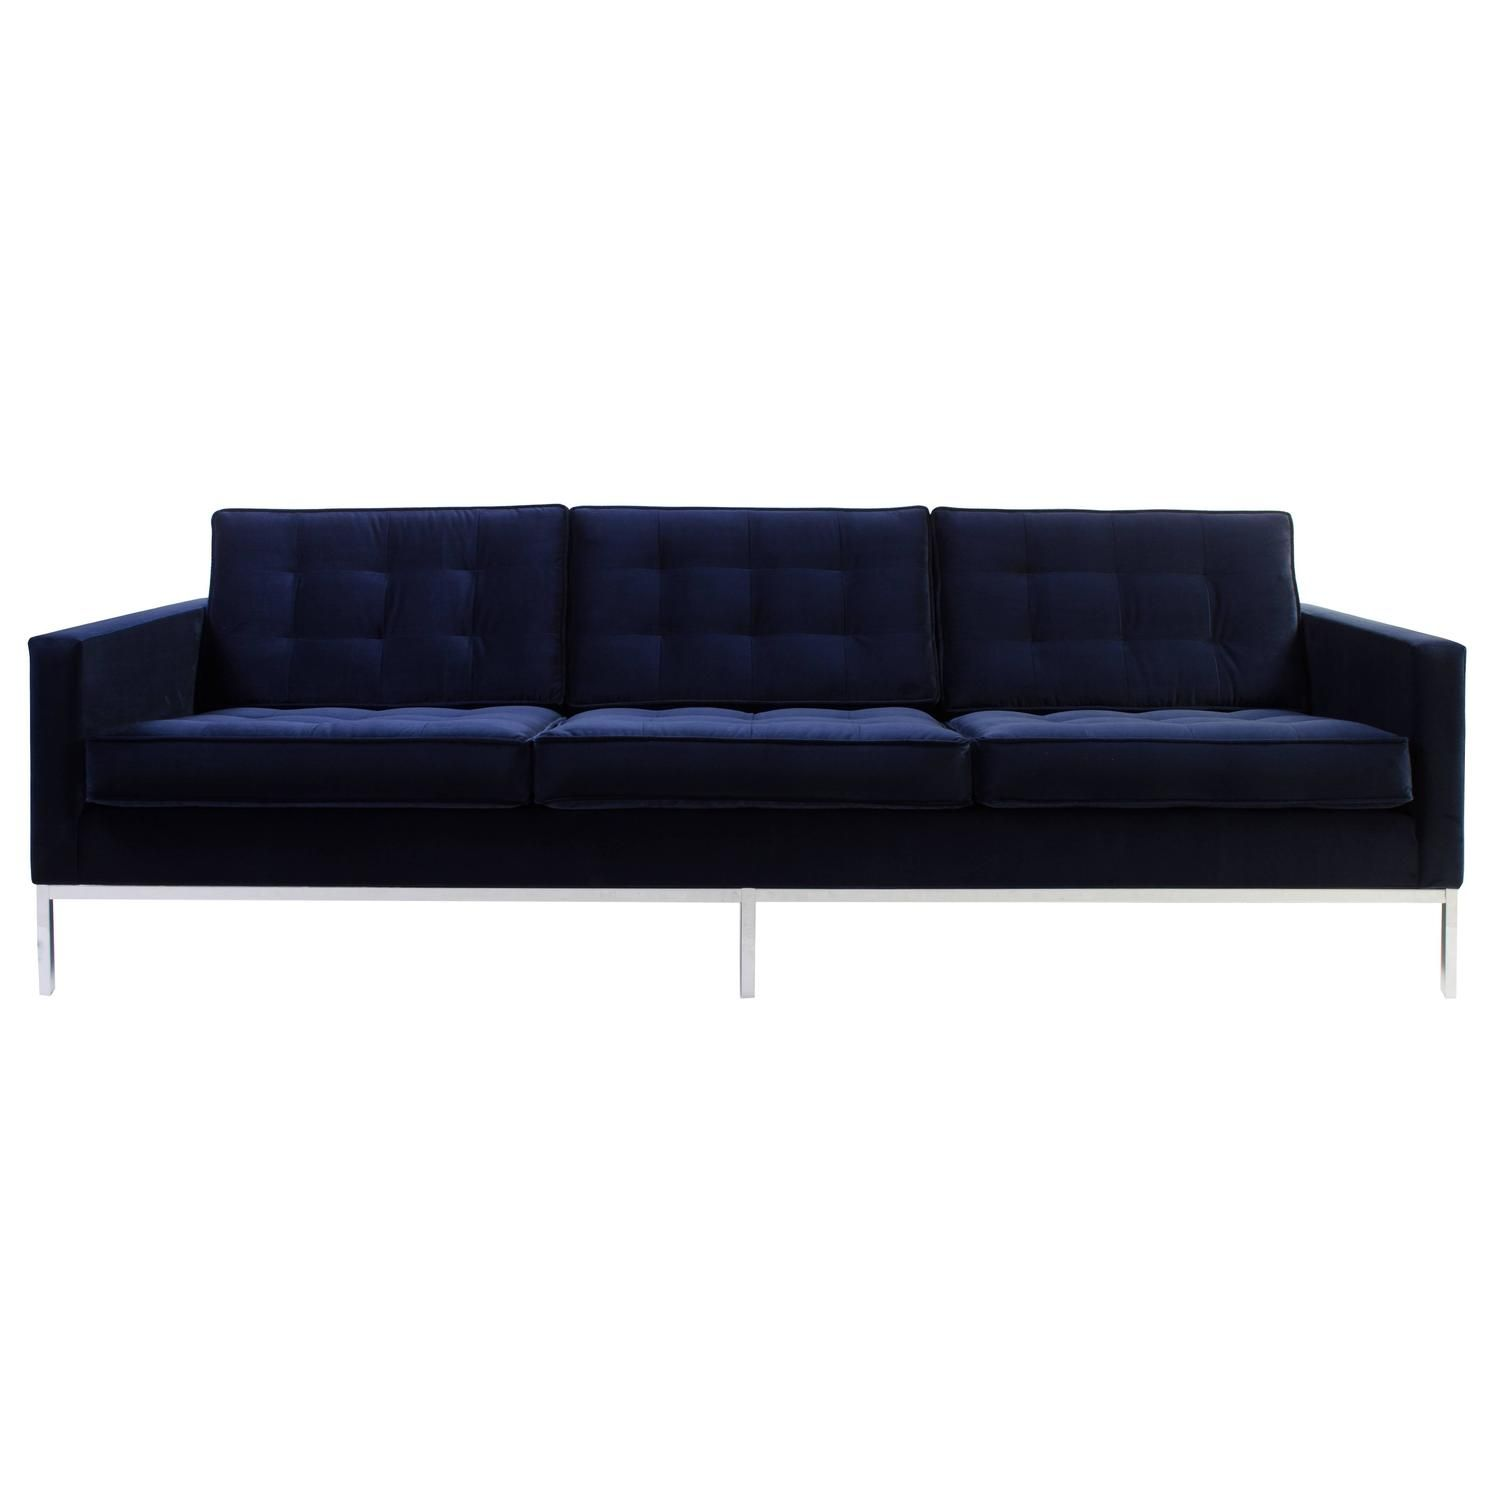 Florence Knoll Sofa Navy American Mid